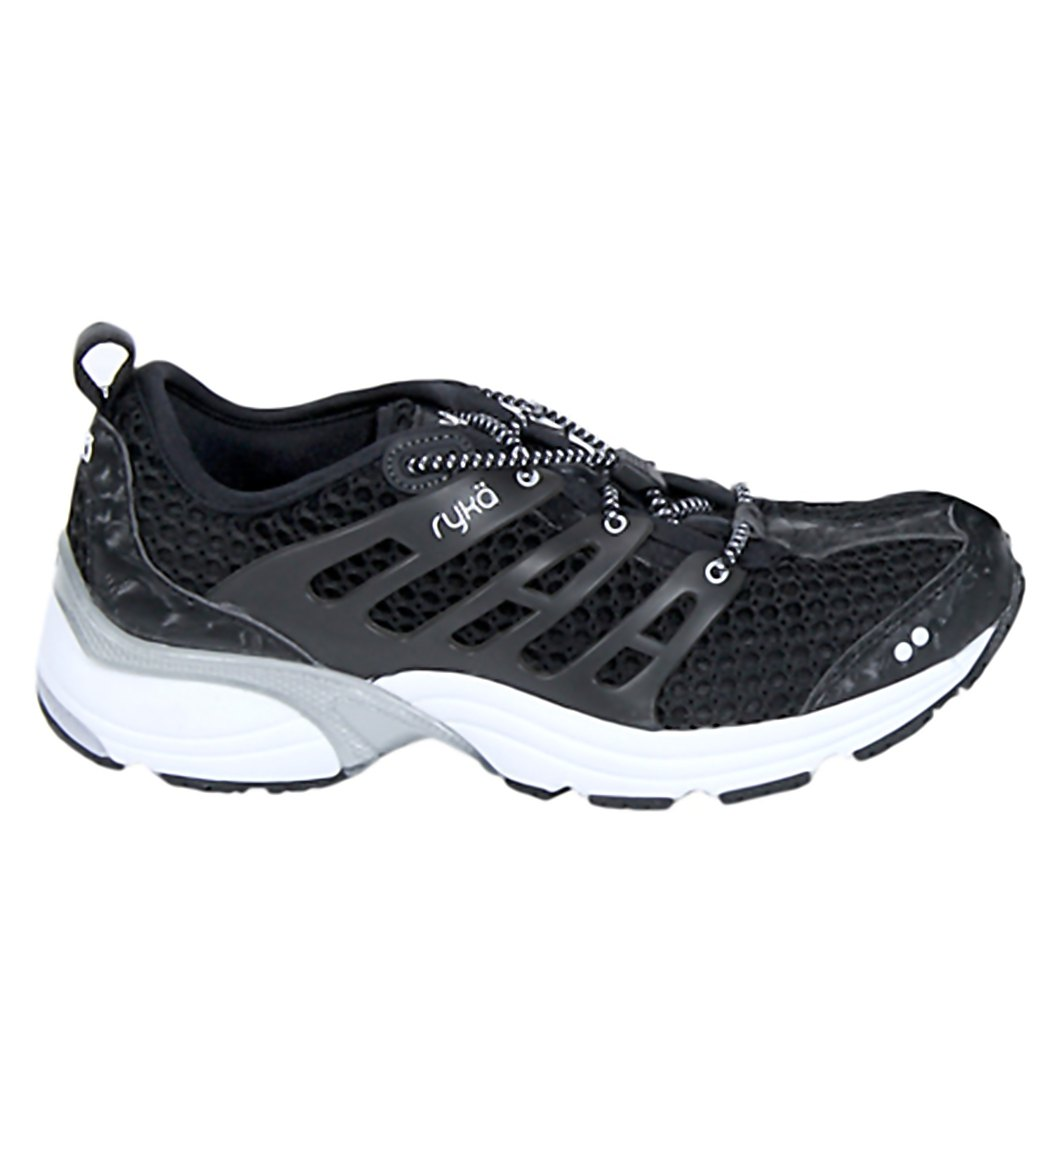 90f9ca2832a0 Ryka Women s Aqua Fit 4 Water Shoes at SwimOutlet.com - Free Shipping